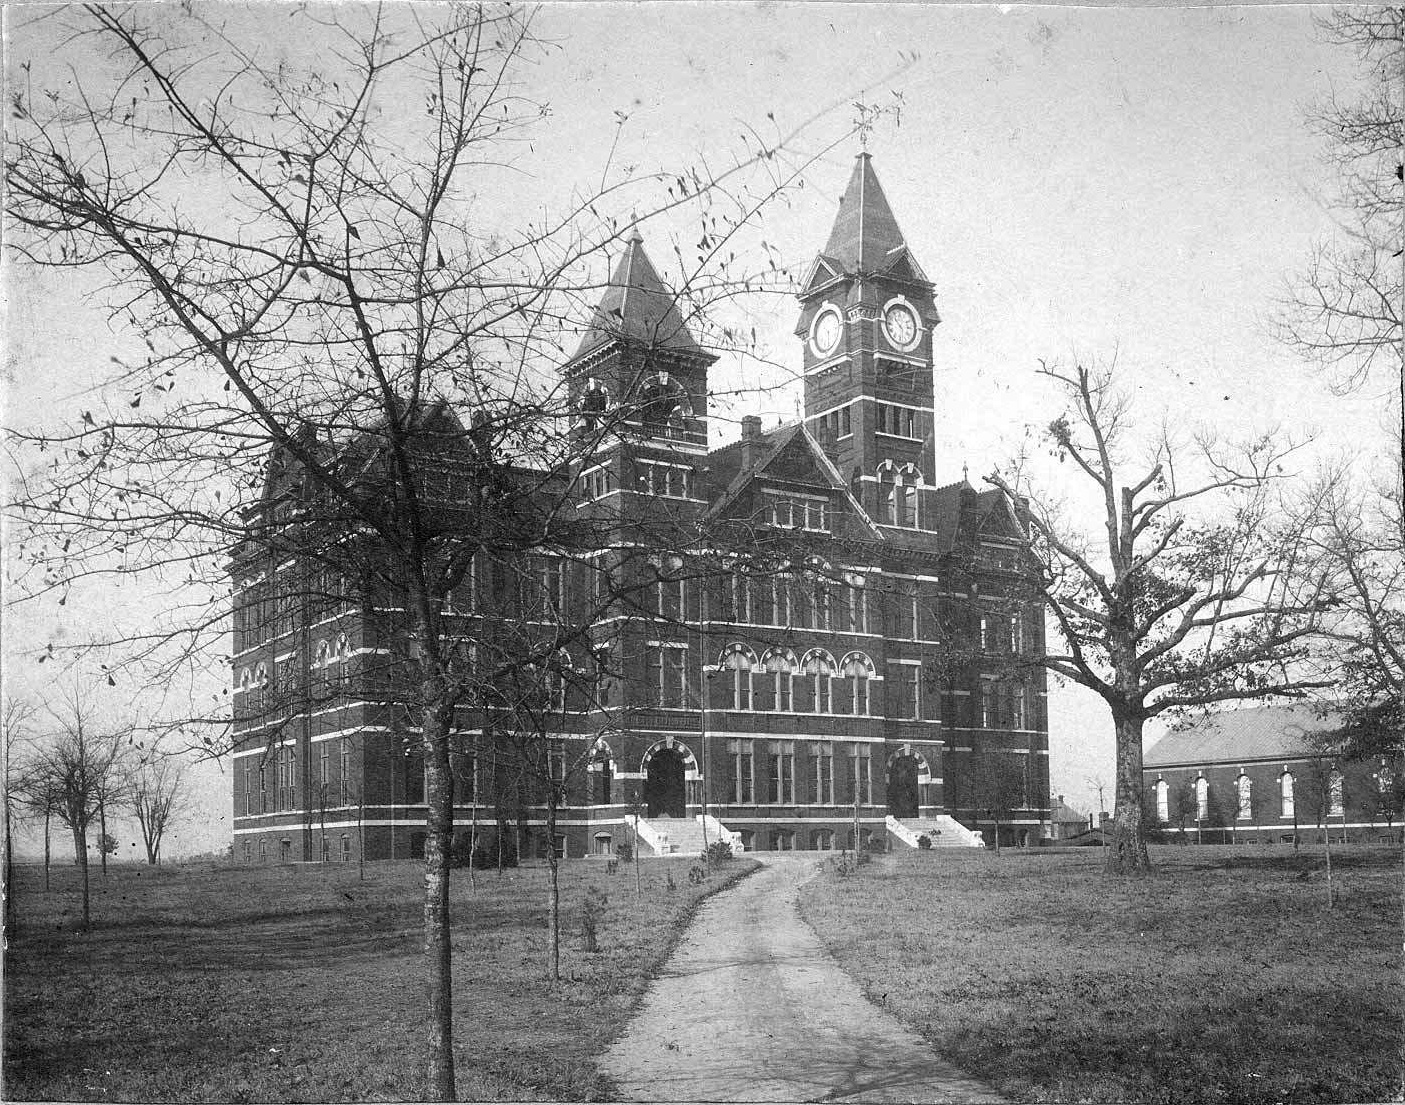 Samford Hall in the 1890s